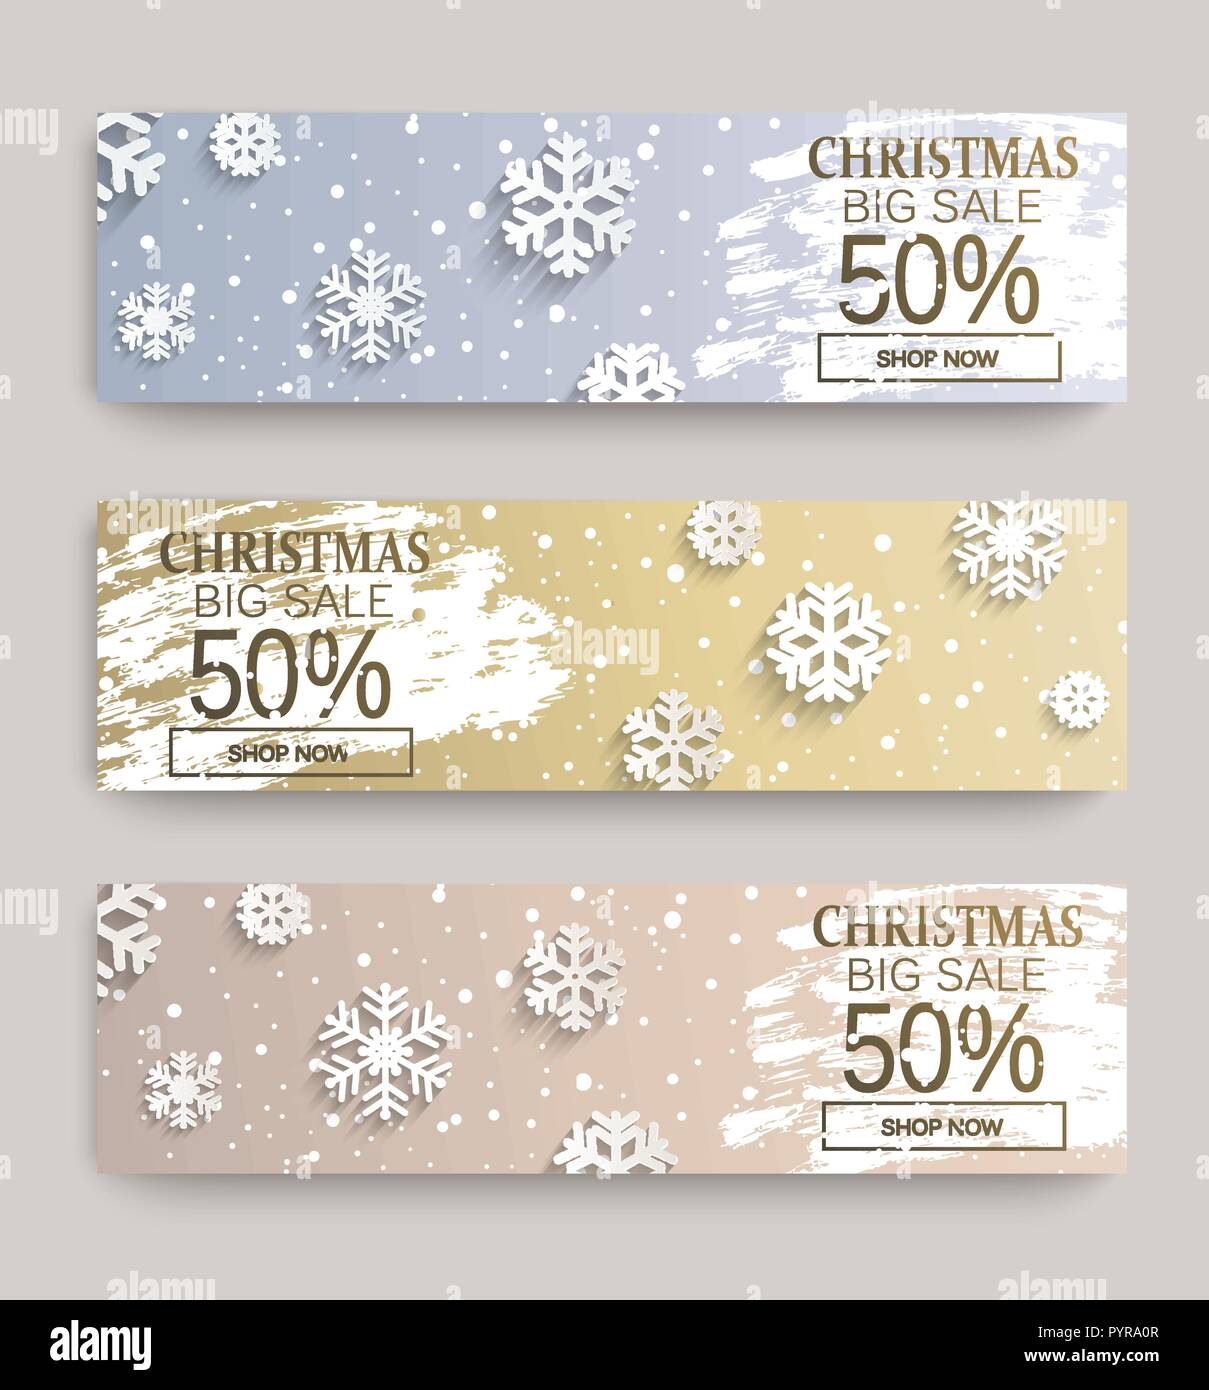 weekend christmas snowflakes stock vector images alamy